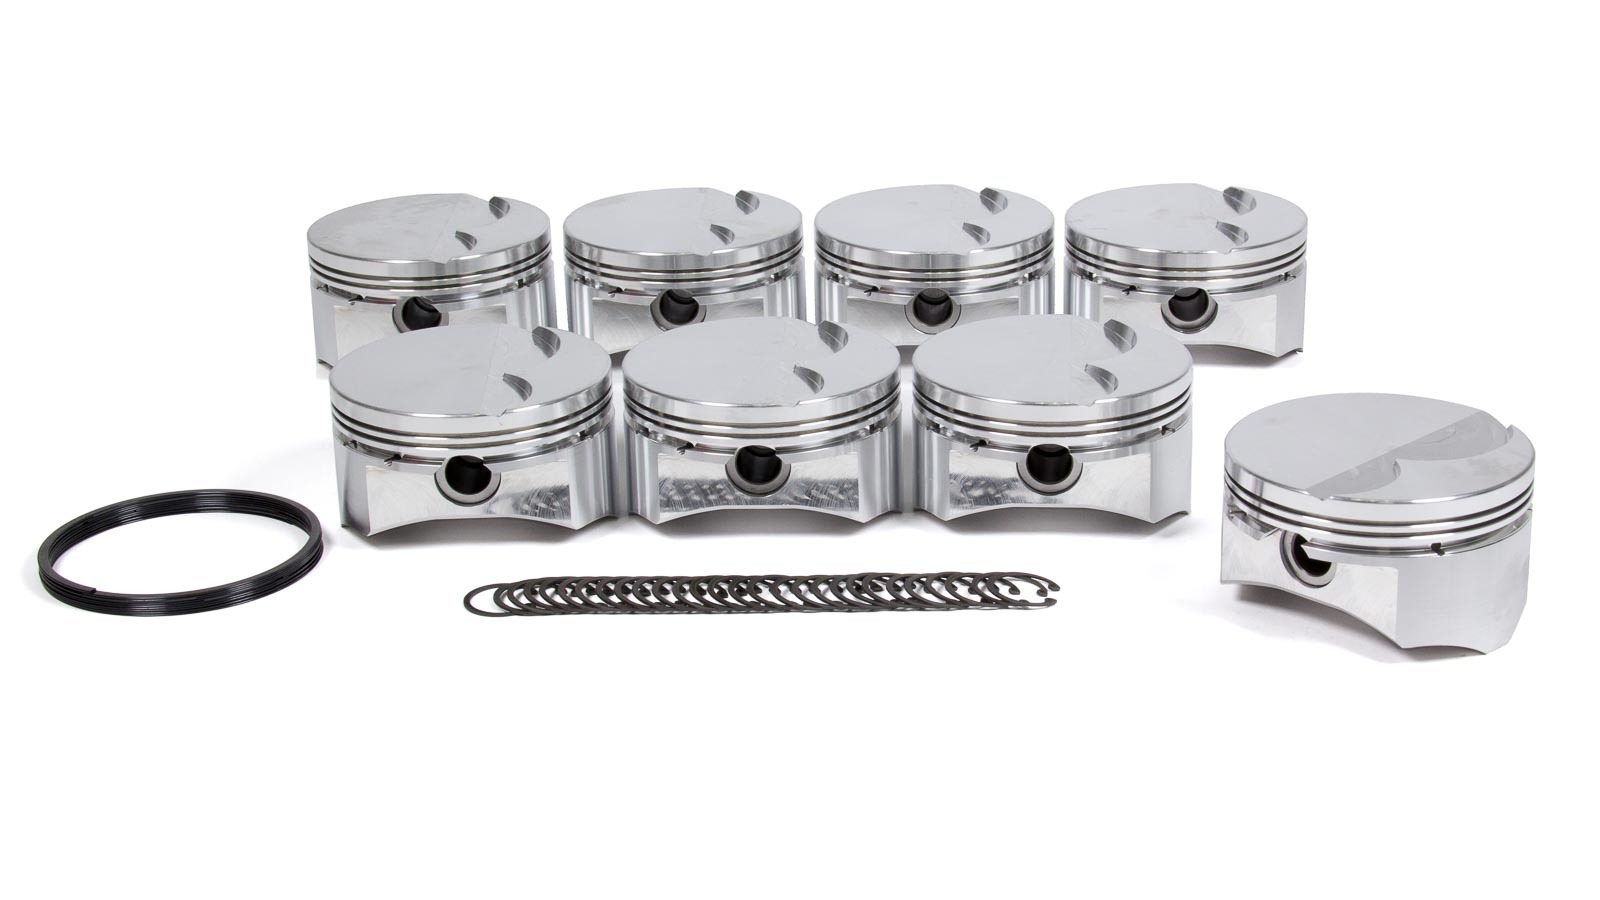 DSS Racing 1920BSX-4030 Piston, SX Series, Forged, 4.030 in Bore, 1.5 x 1.5 x 3.0 mm Ring Grooves, Minus 5.0 cc, GM LS-Series, Set of 8